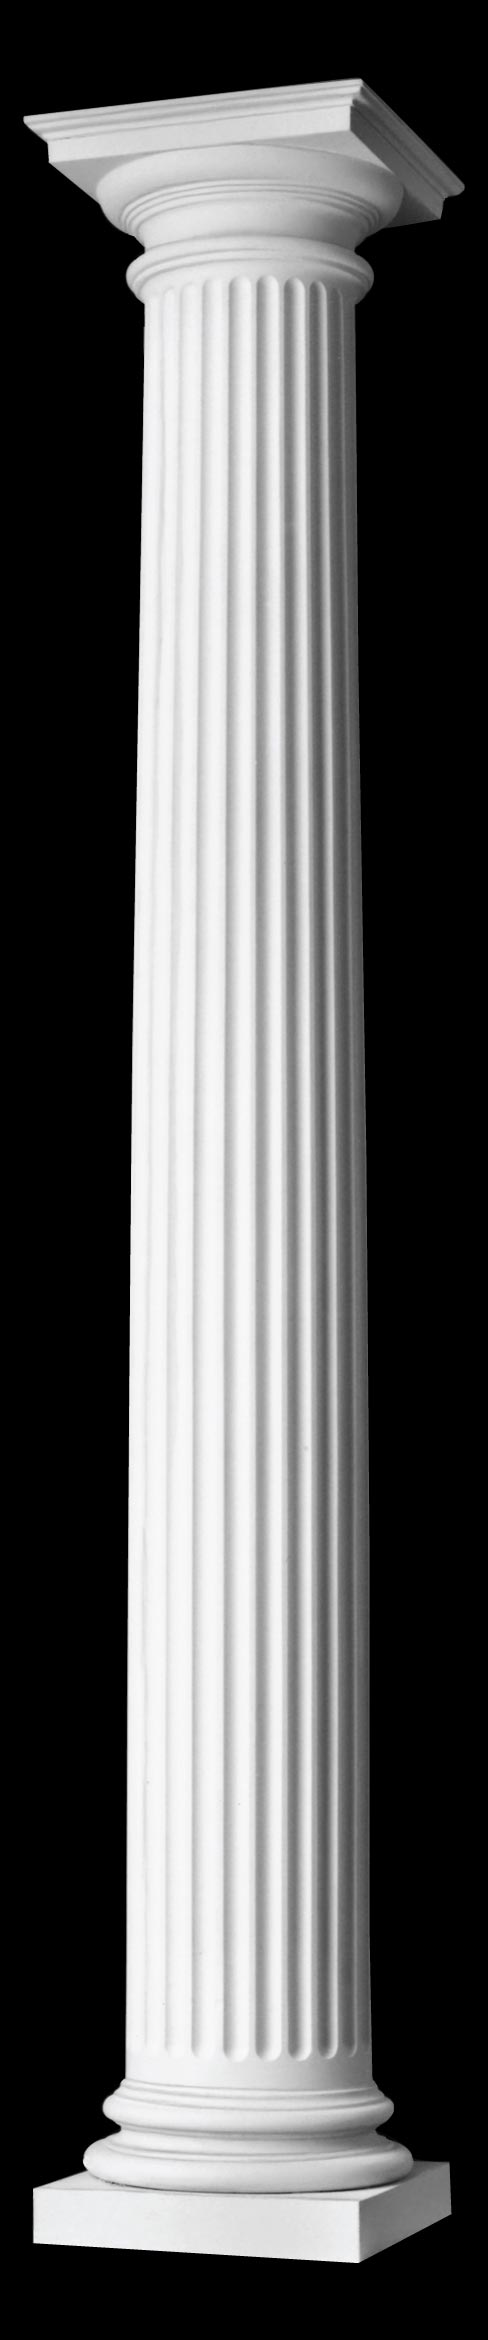 Fluted Wood Column Roman Doric Capital Ionic Attic Base